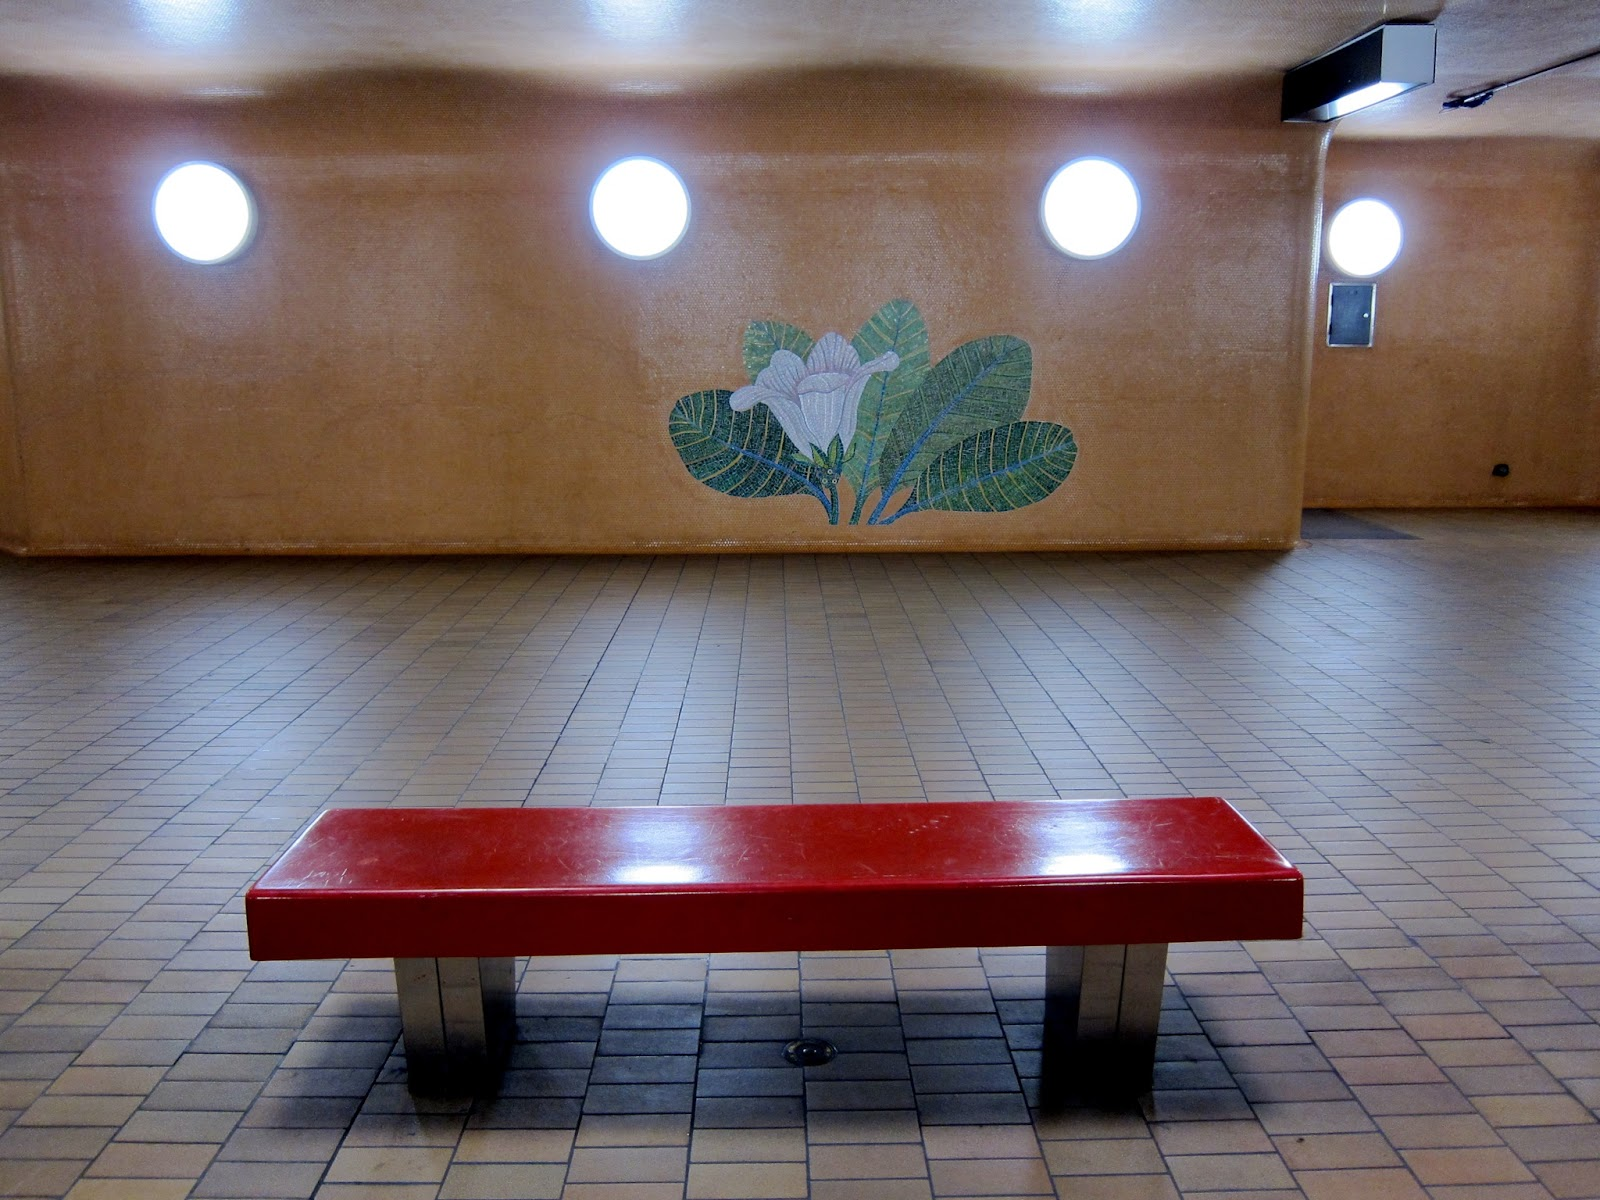 Bench at Dupont station